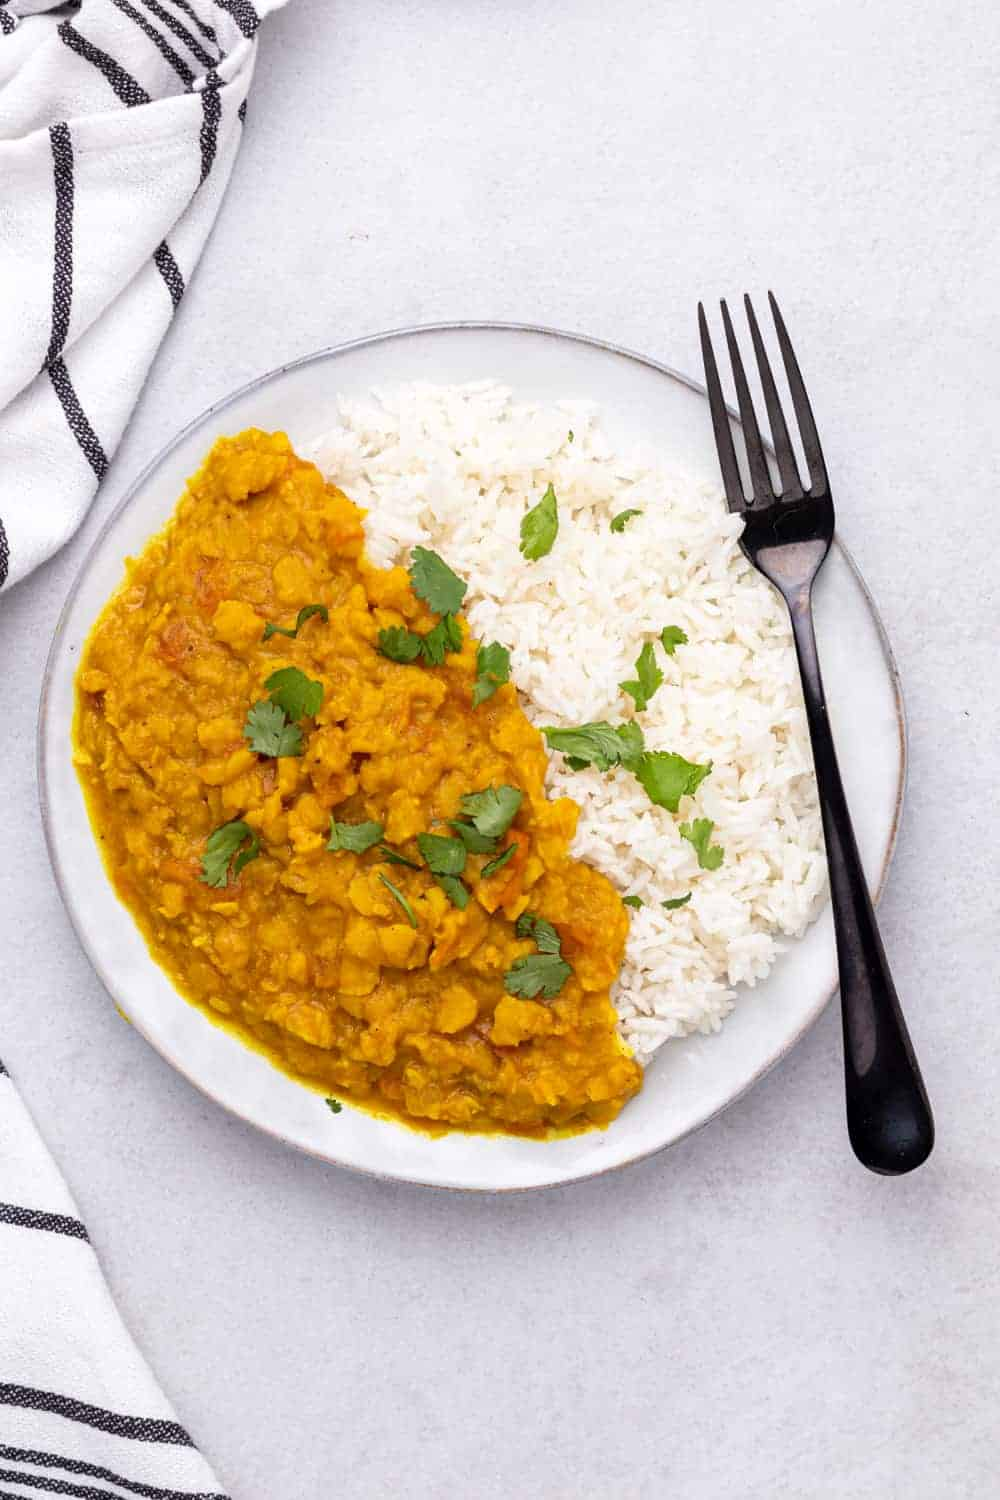 Served dal on white rice with cilantro garnish